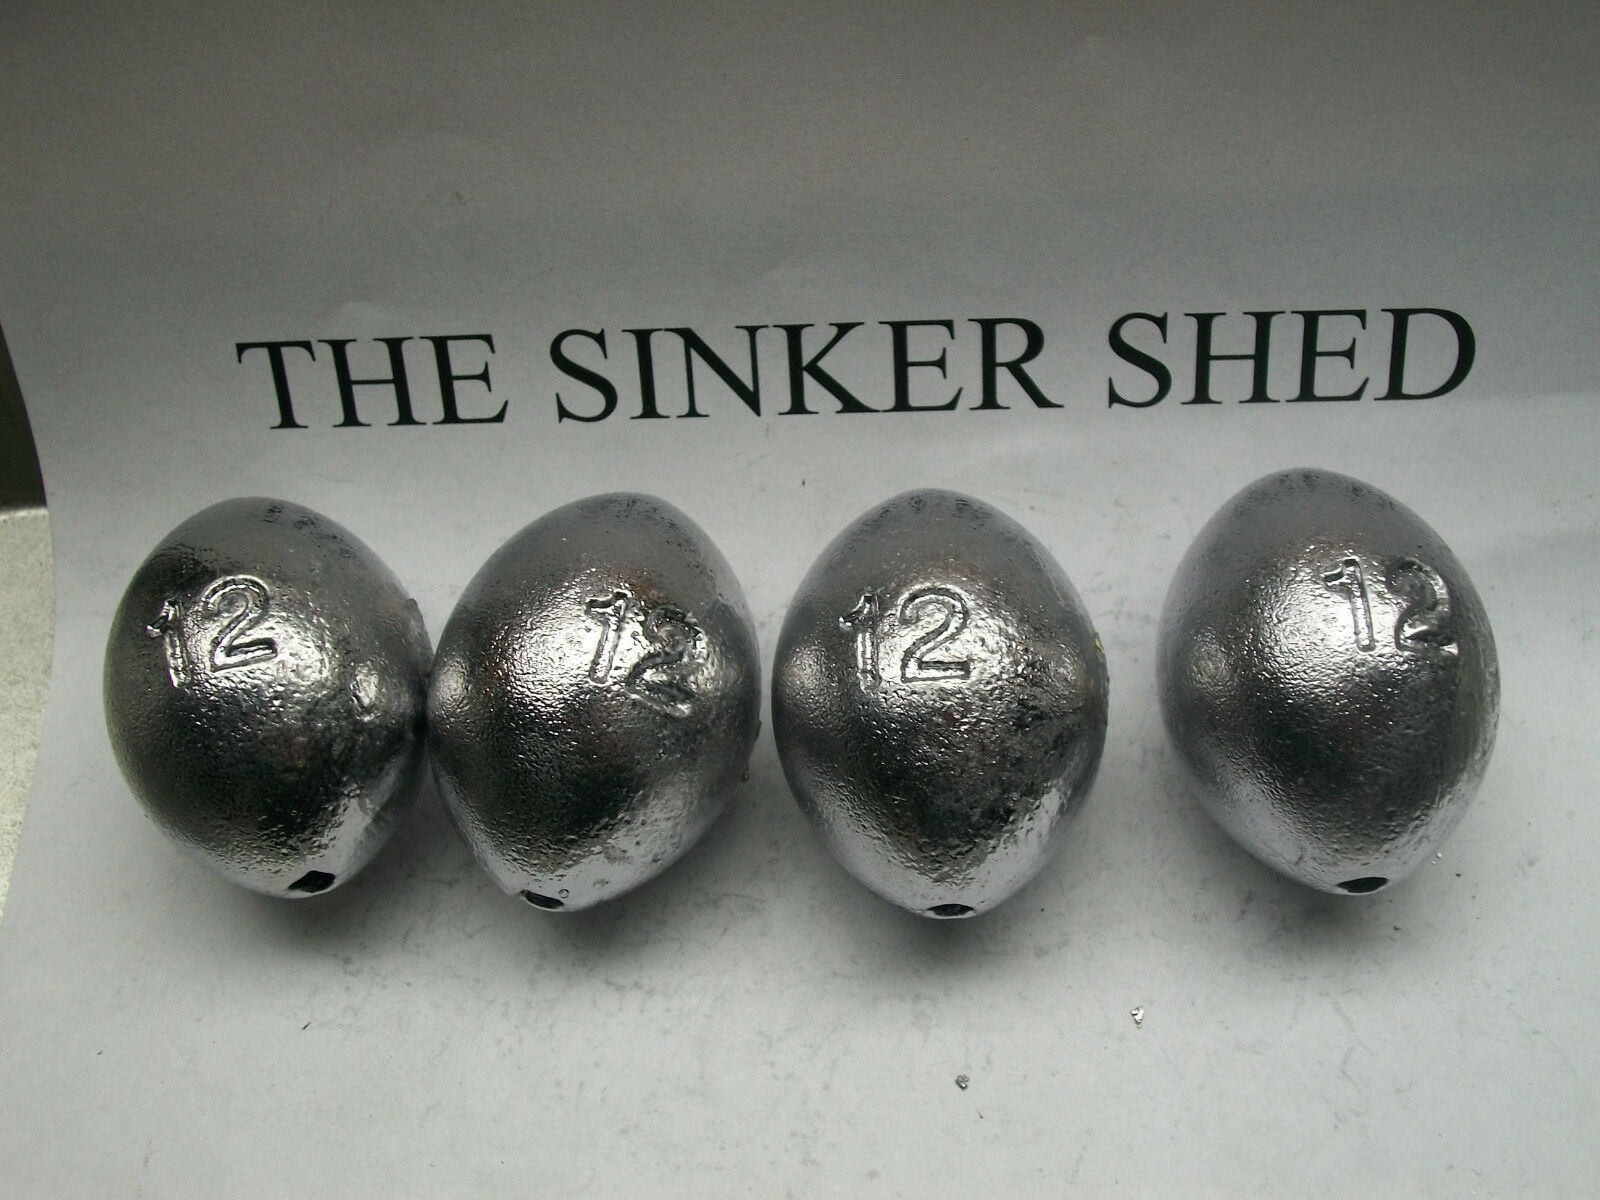 12 egg oz egg 12 sinkers / decoy weights  - quantity of 10/20/30 - FREE SHIPPING c3061a